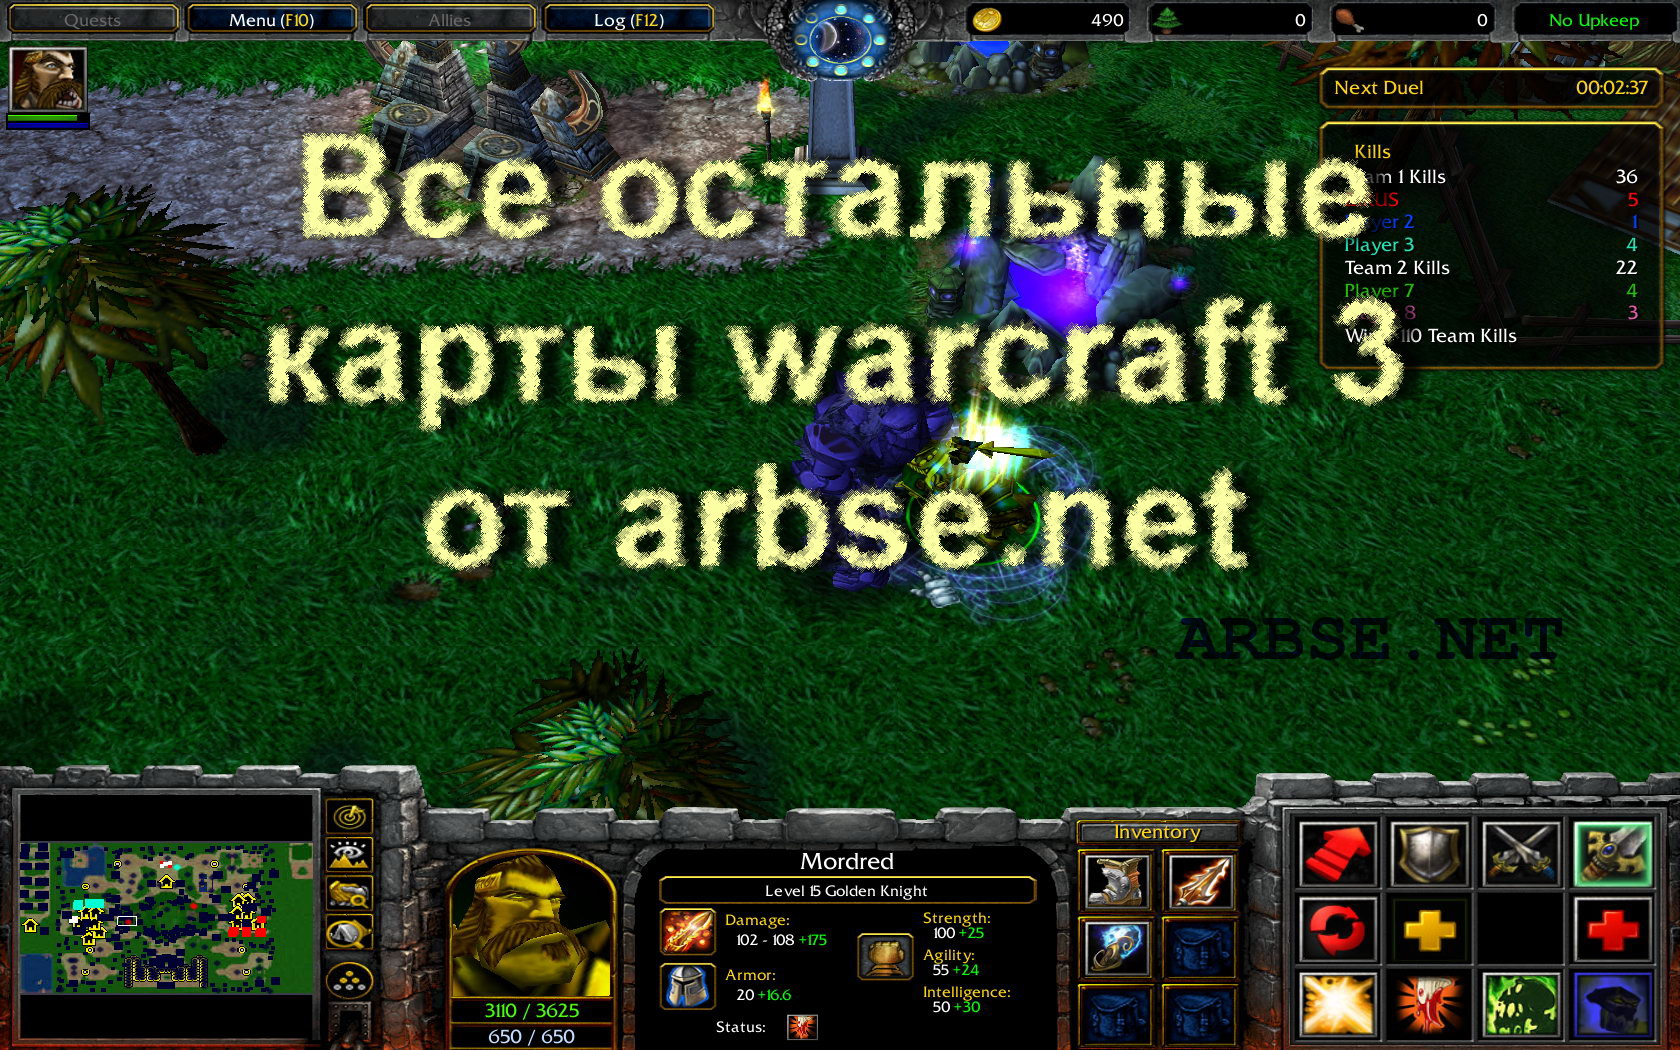 Warcraft 3 reign of chaos (pc game) 100% free download | gameslay.